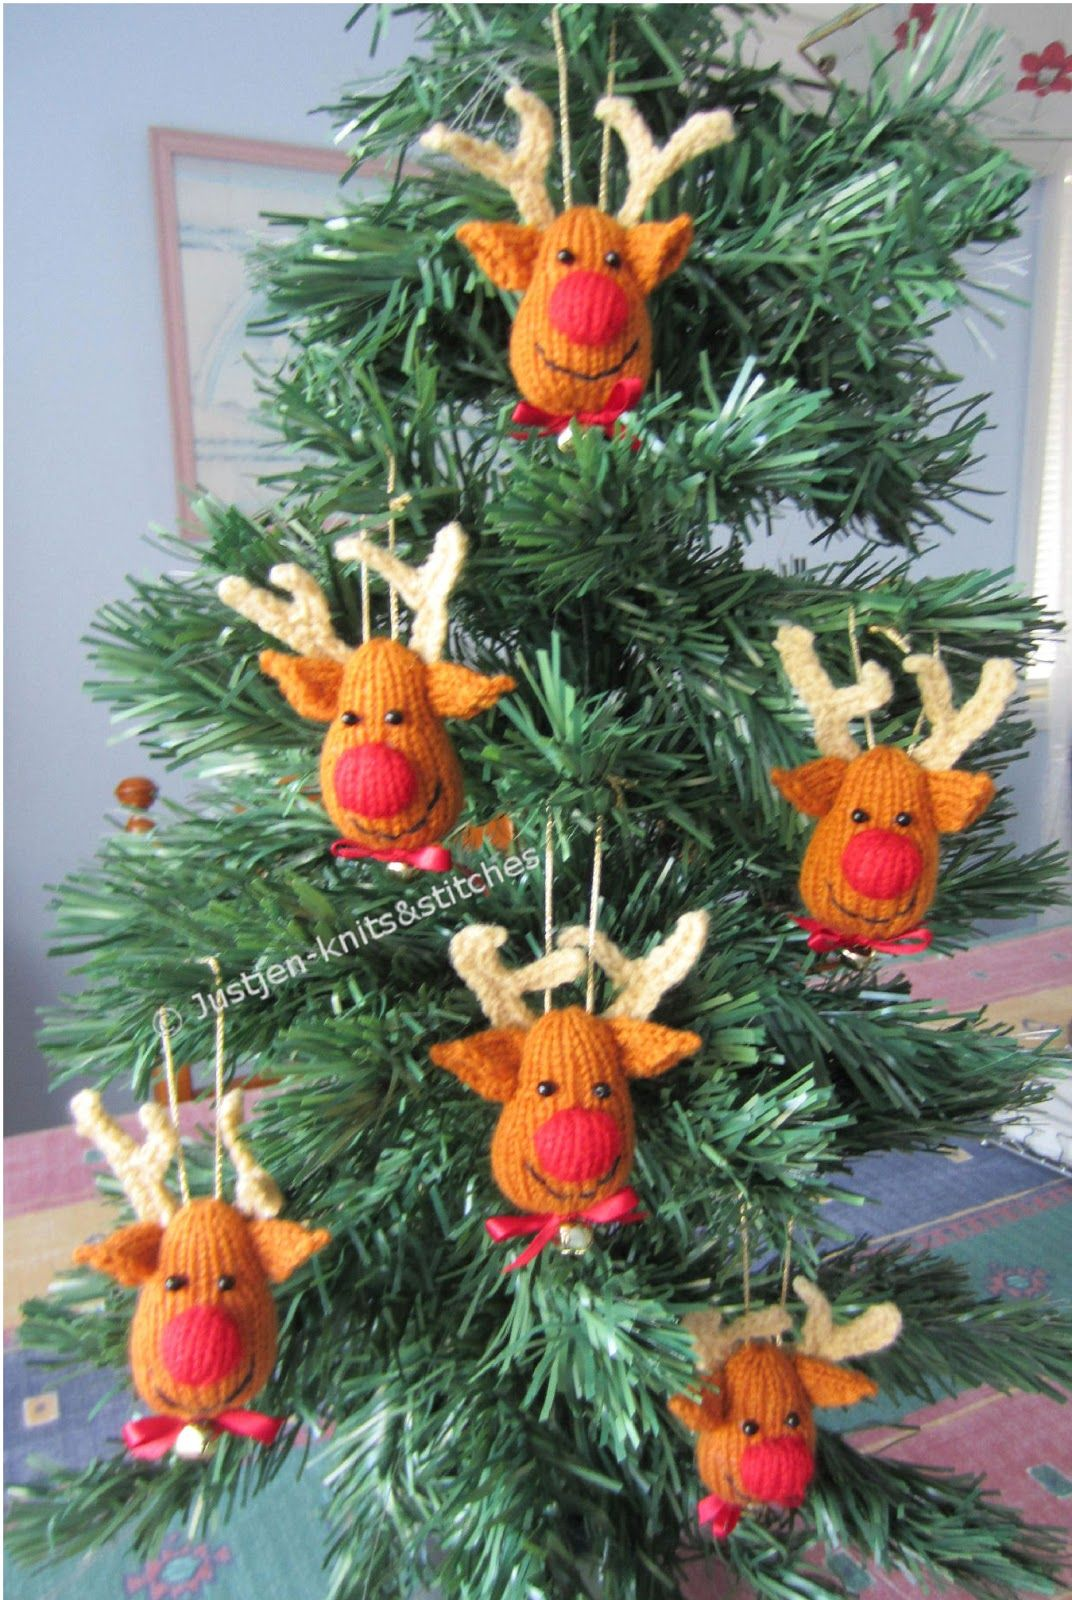 Reindeer Christmas Tree Ornaments Come On How Cute Are These